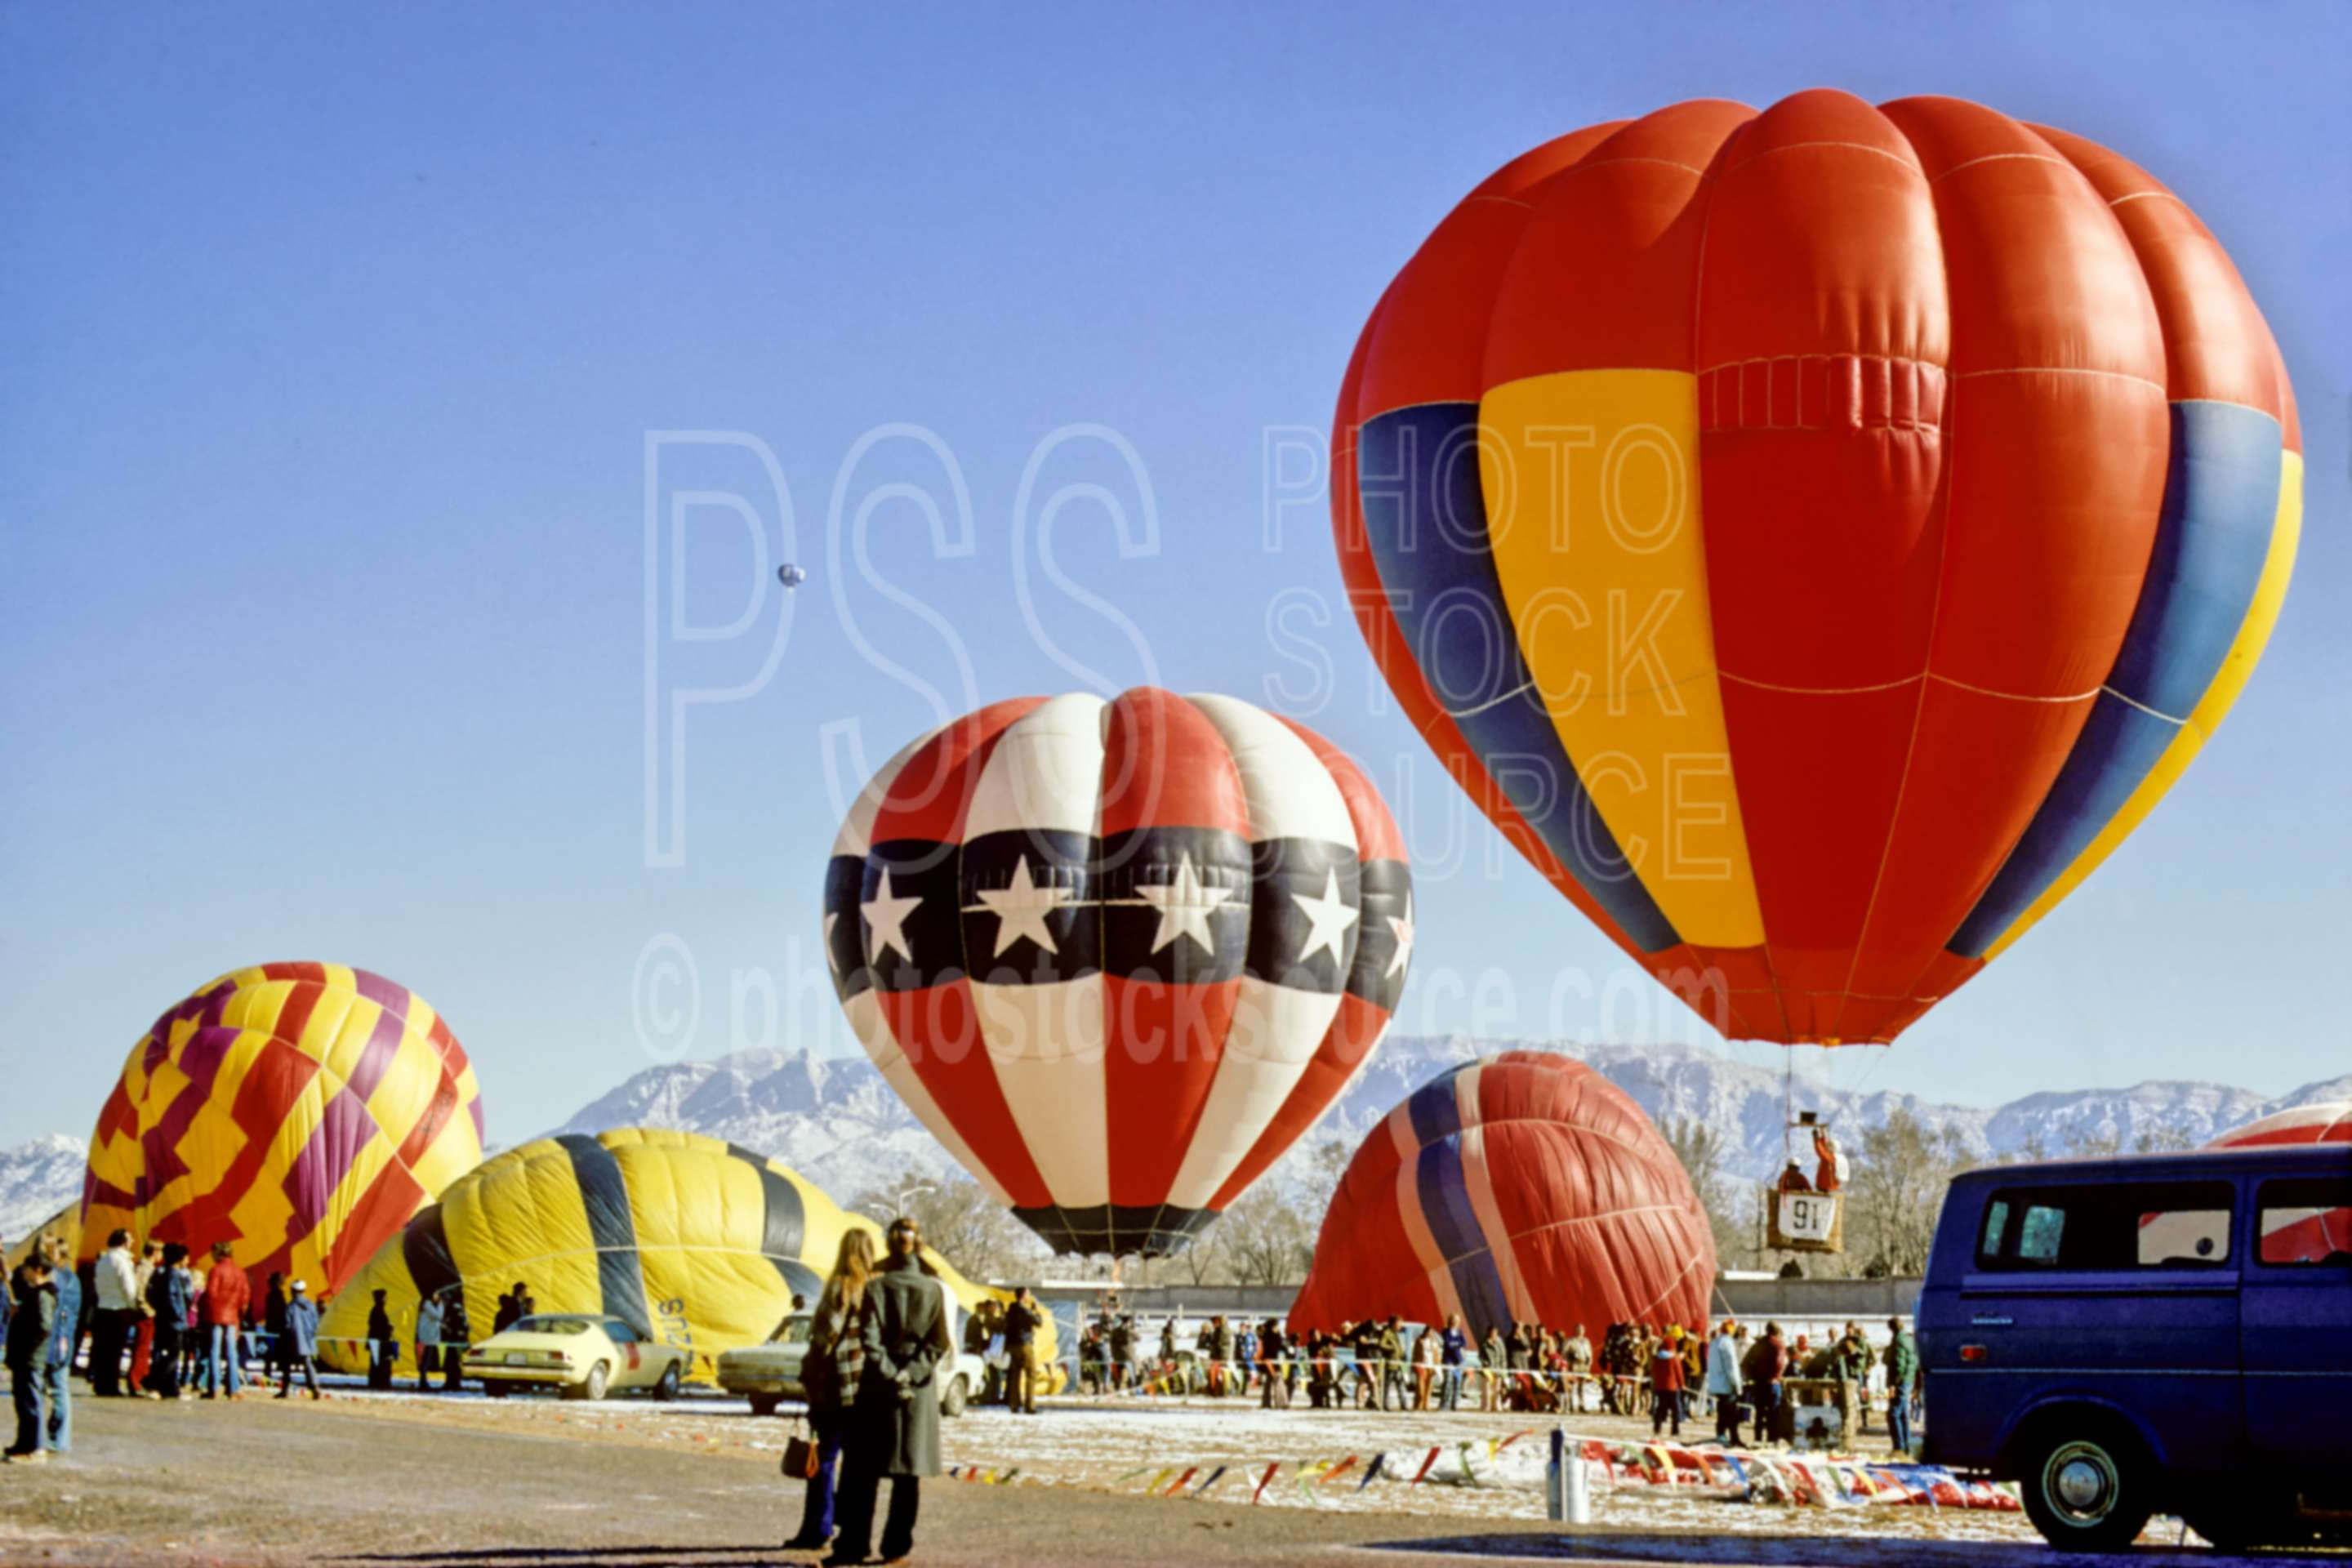 Ready for Lift Off,flys,hot air balloon,aeronautics,flight,usas